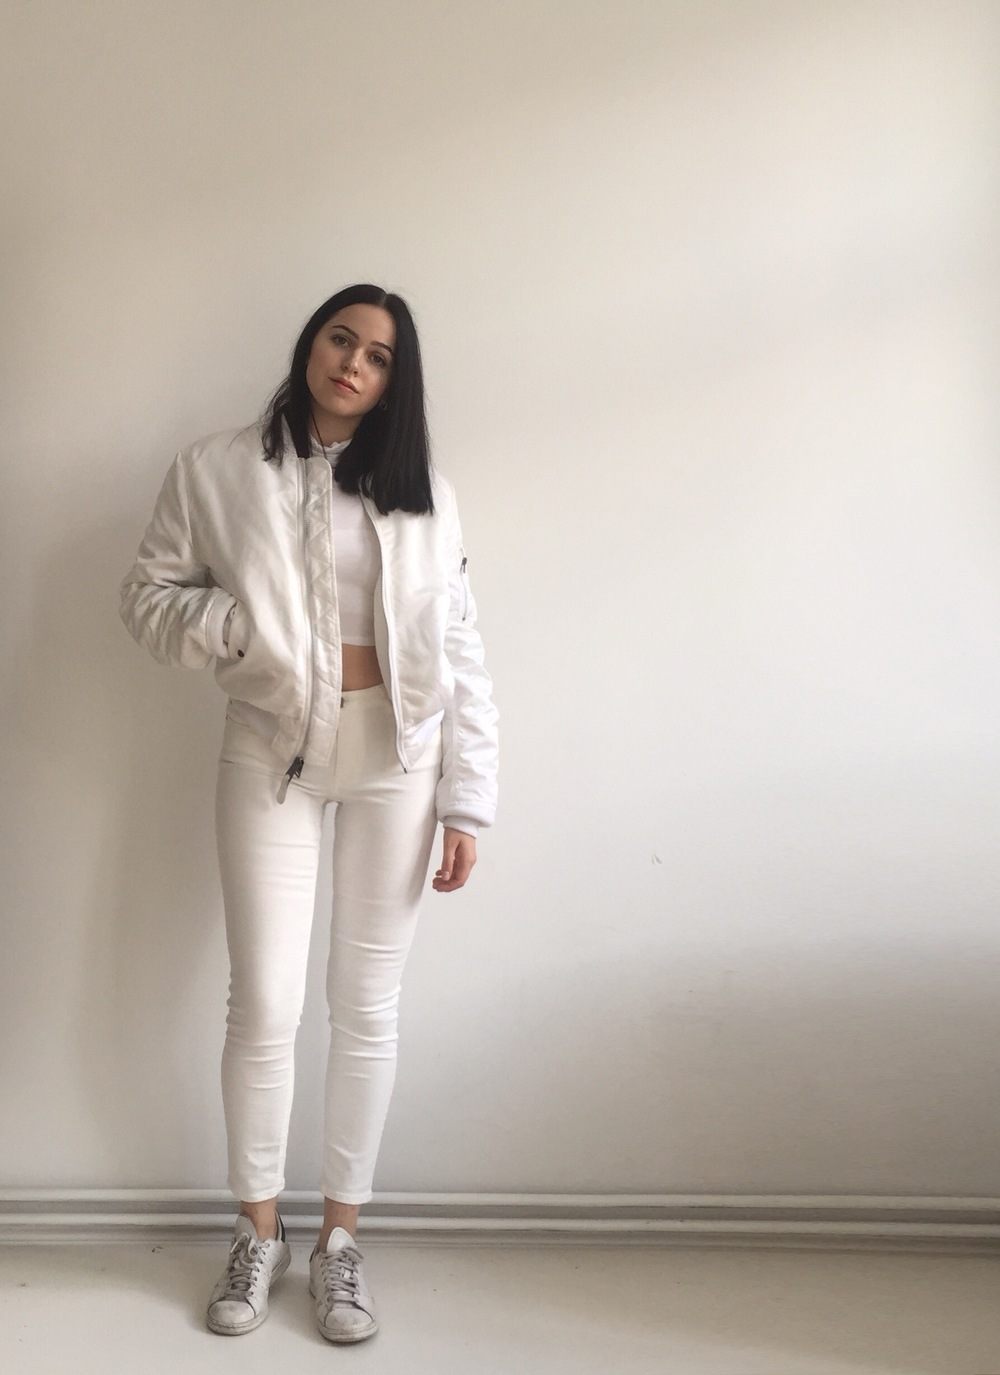 in plain white lately for myself